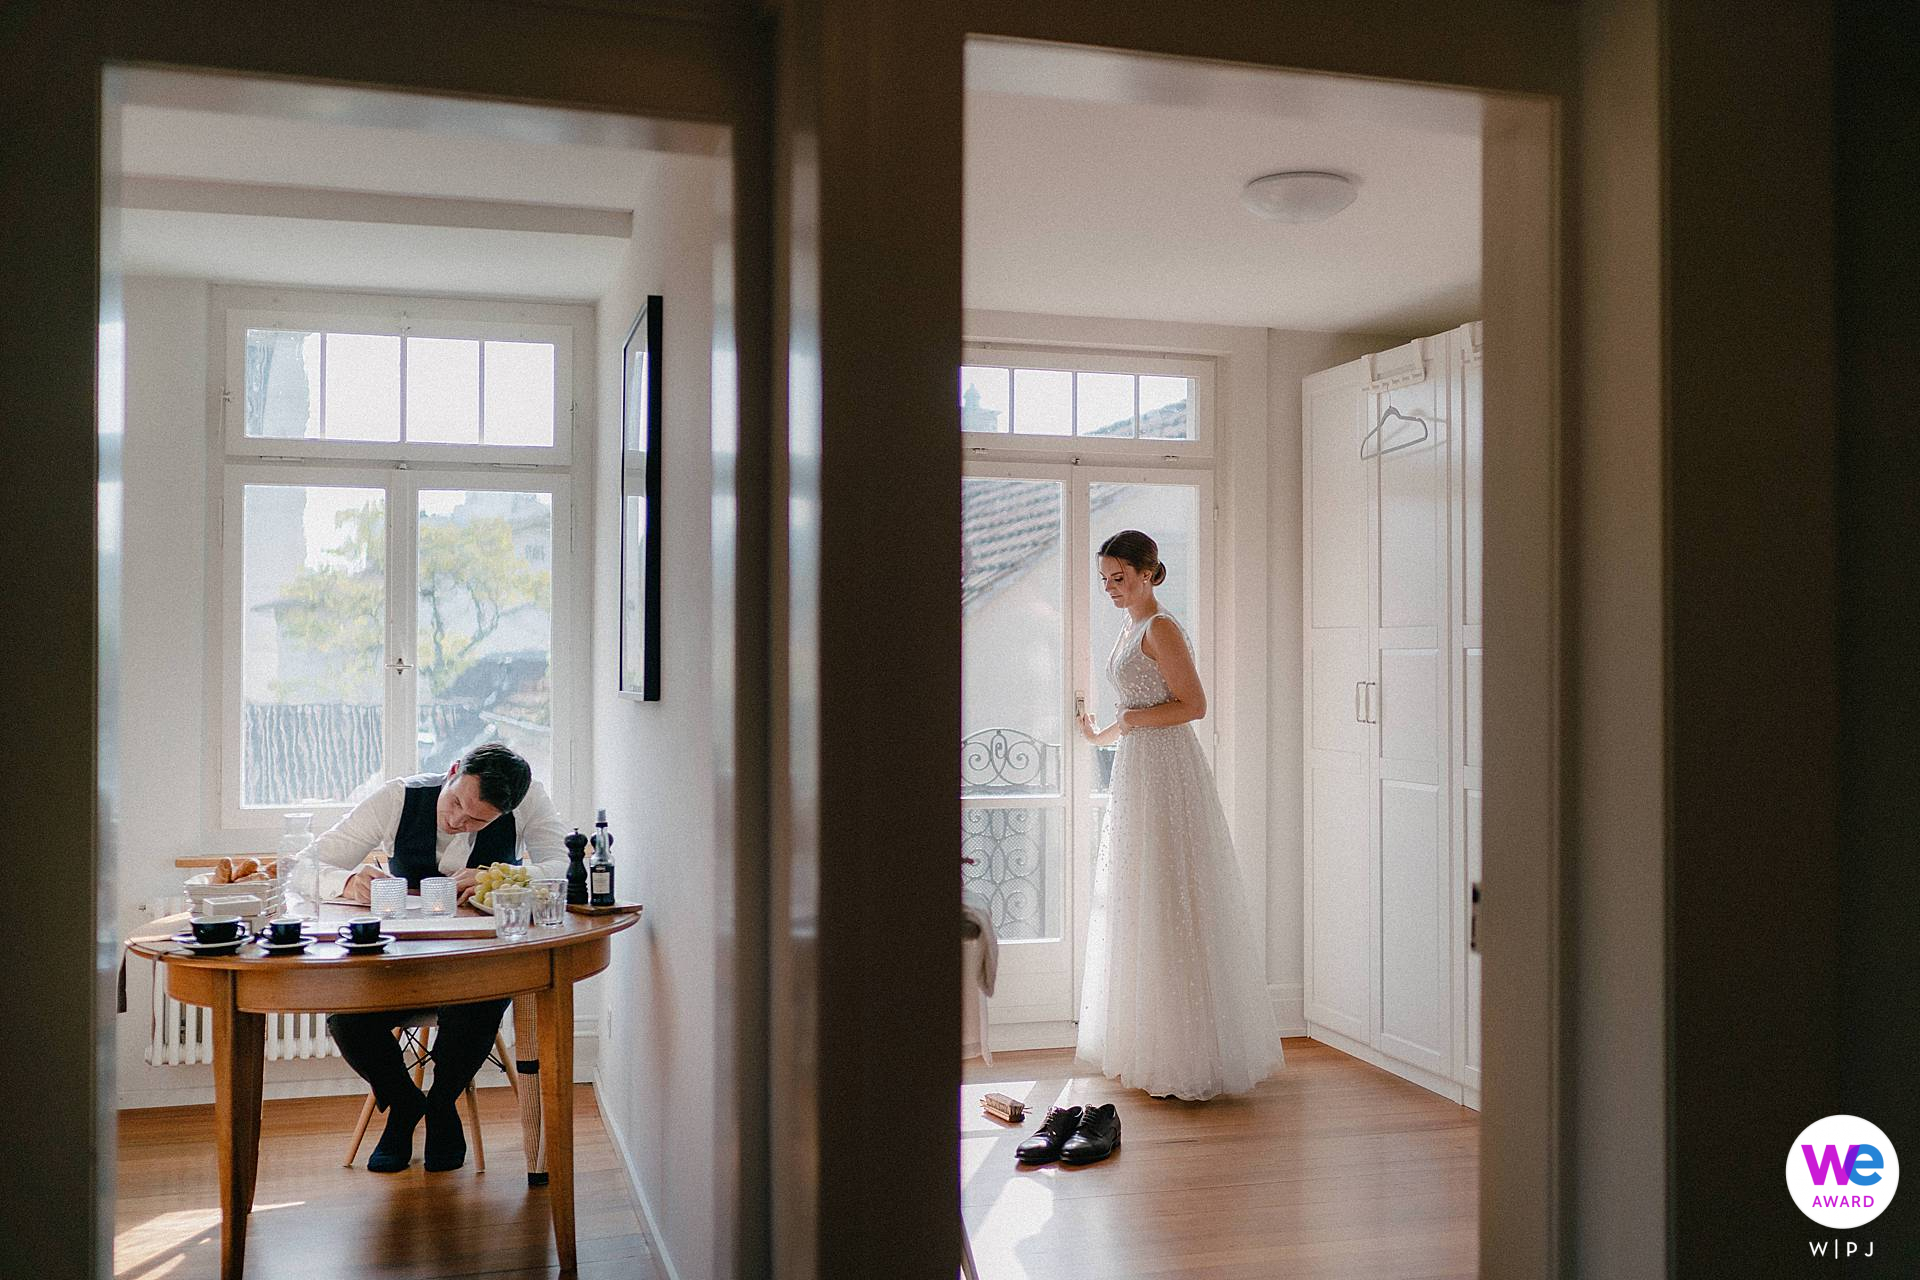 Wedding Photographer for Switzerland | The groom is writing his vows